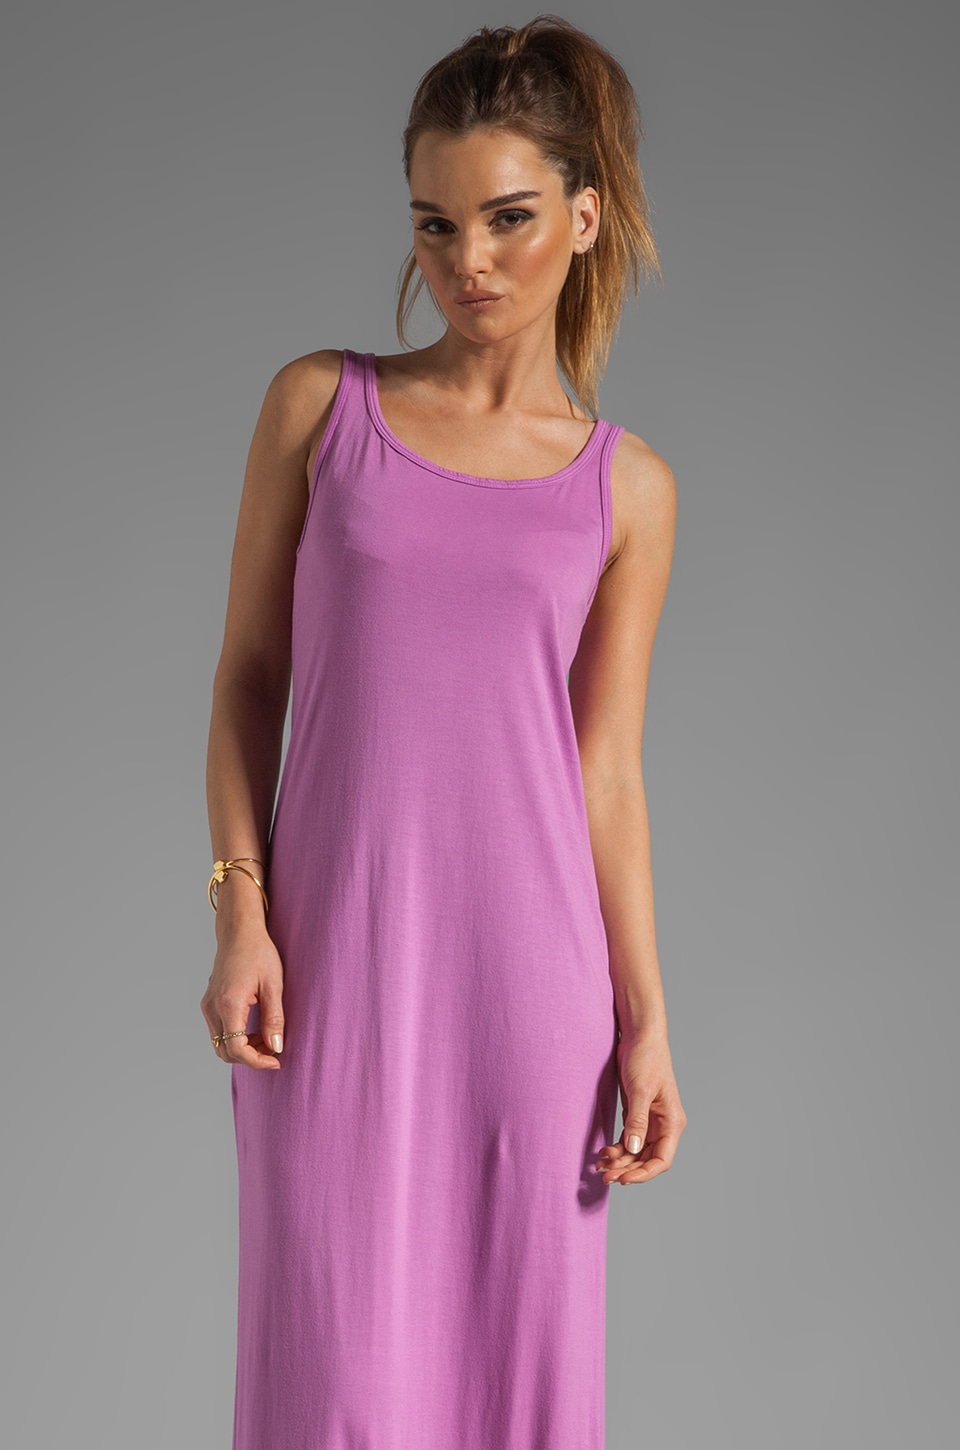 Michael Lauren Edison Long Tank Dress in Berry Blast